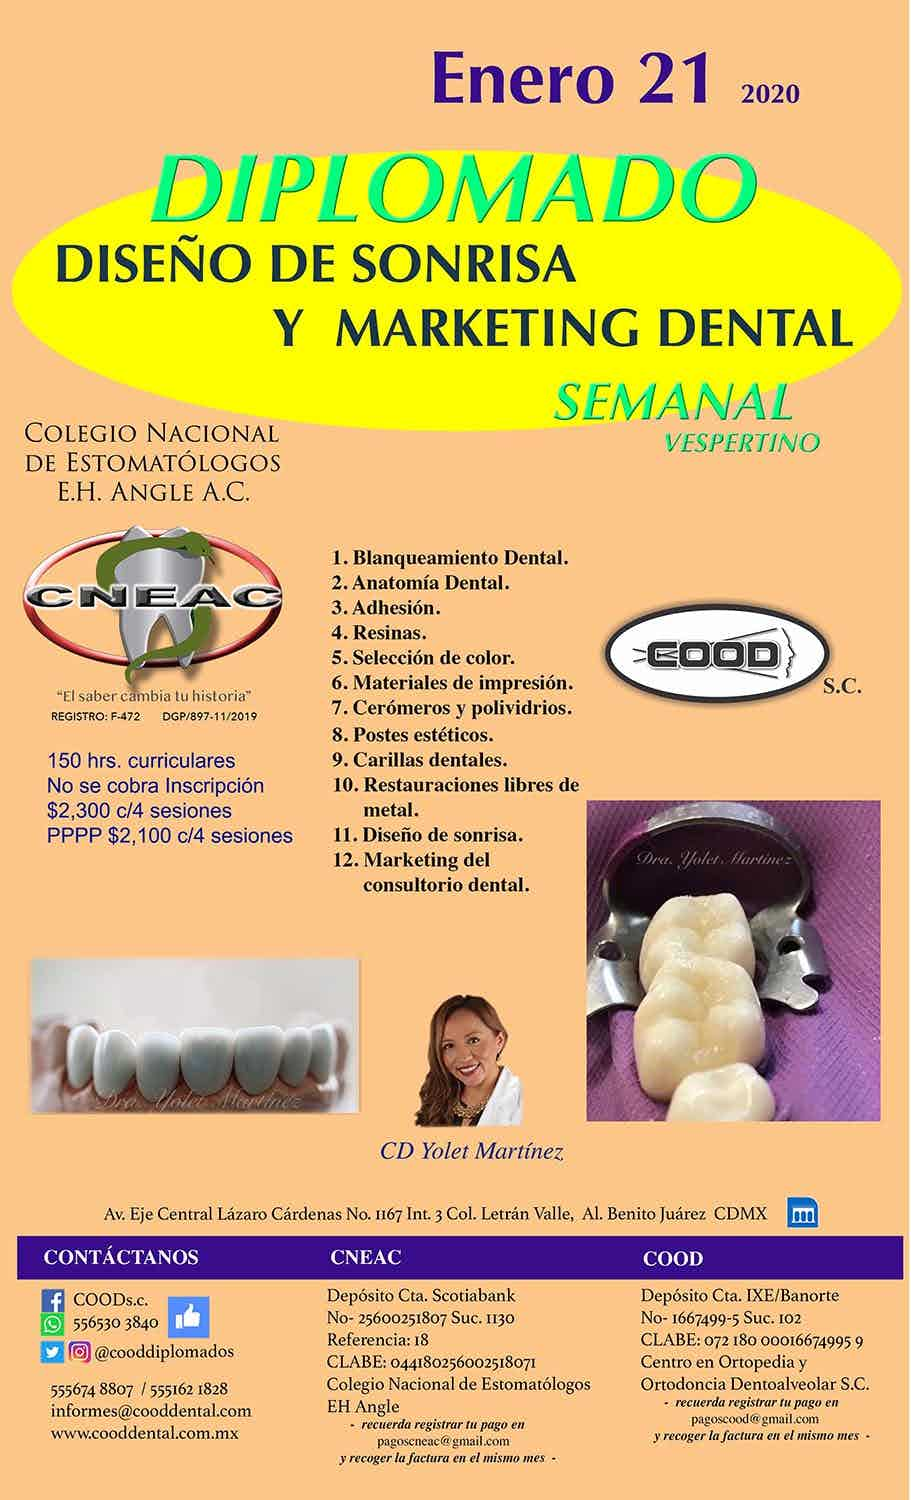 Diplomado en Diseño de Sonrisa y Marketing Dental